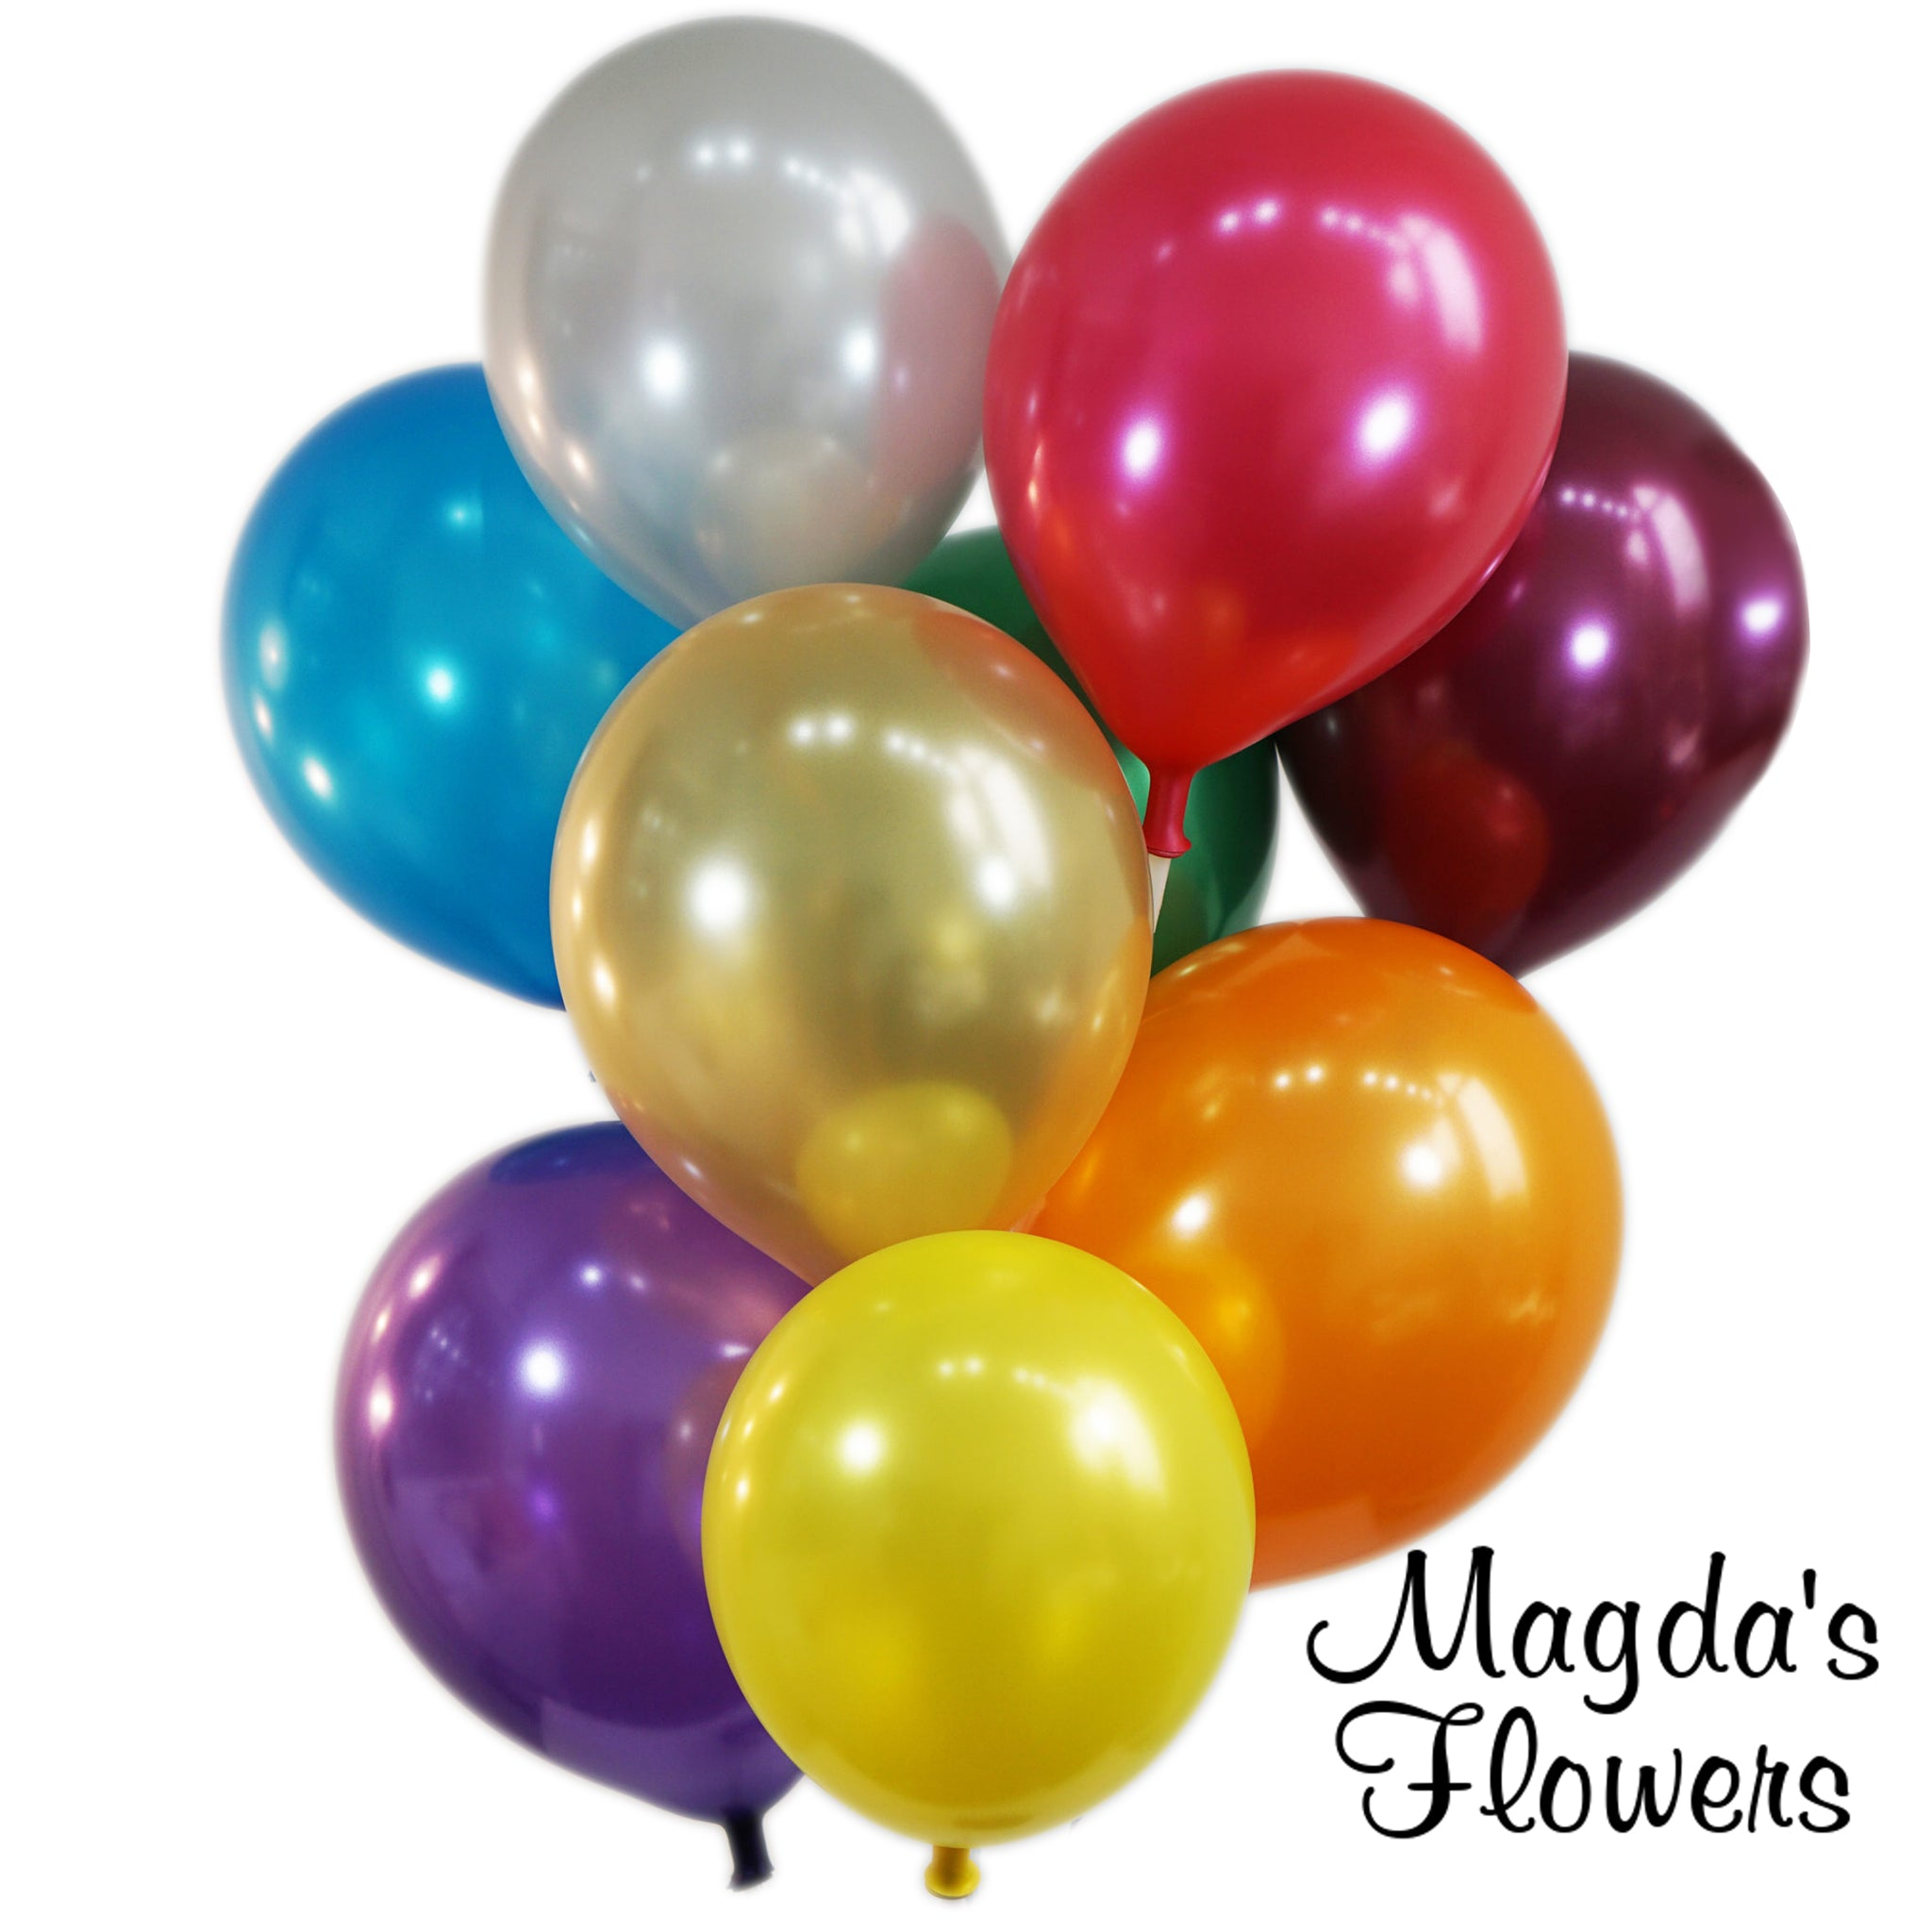 Latex Balloons - Add some latex ballons to your floral gift at Magda's Flowers